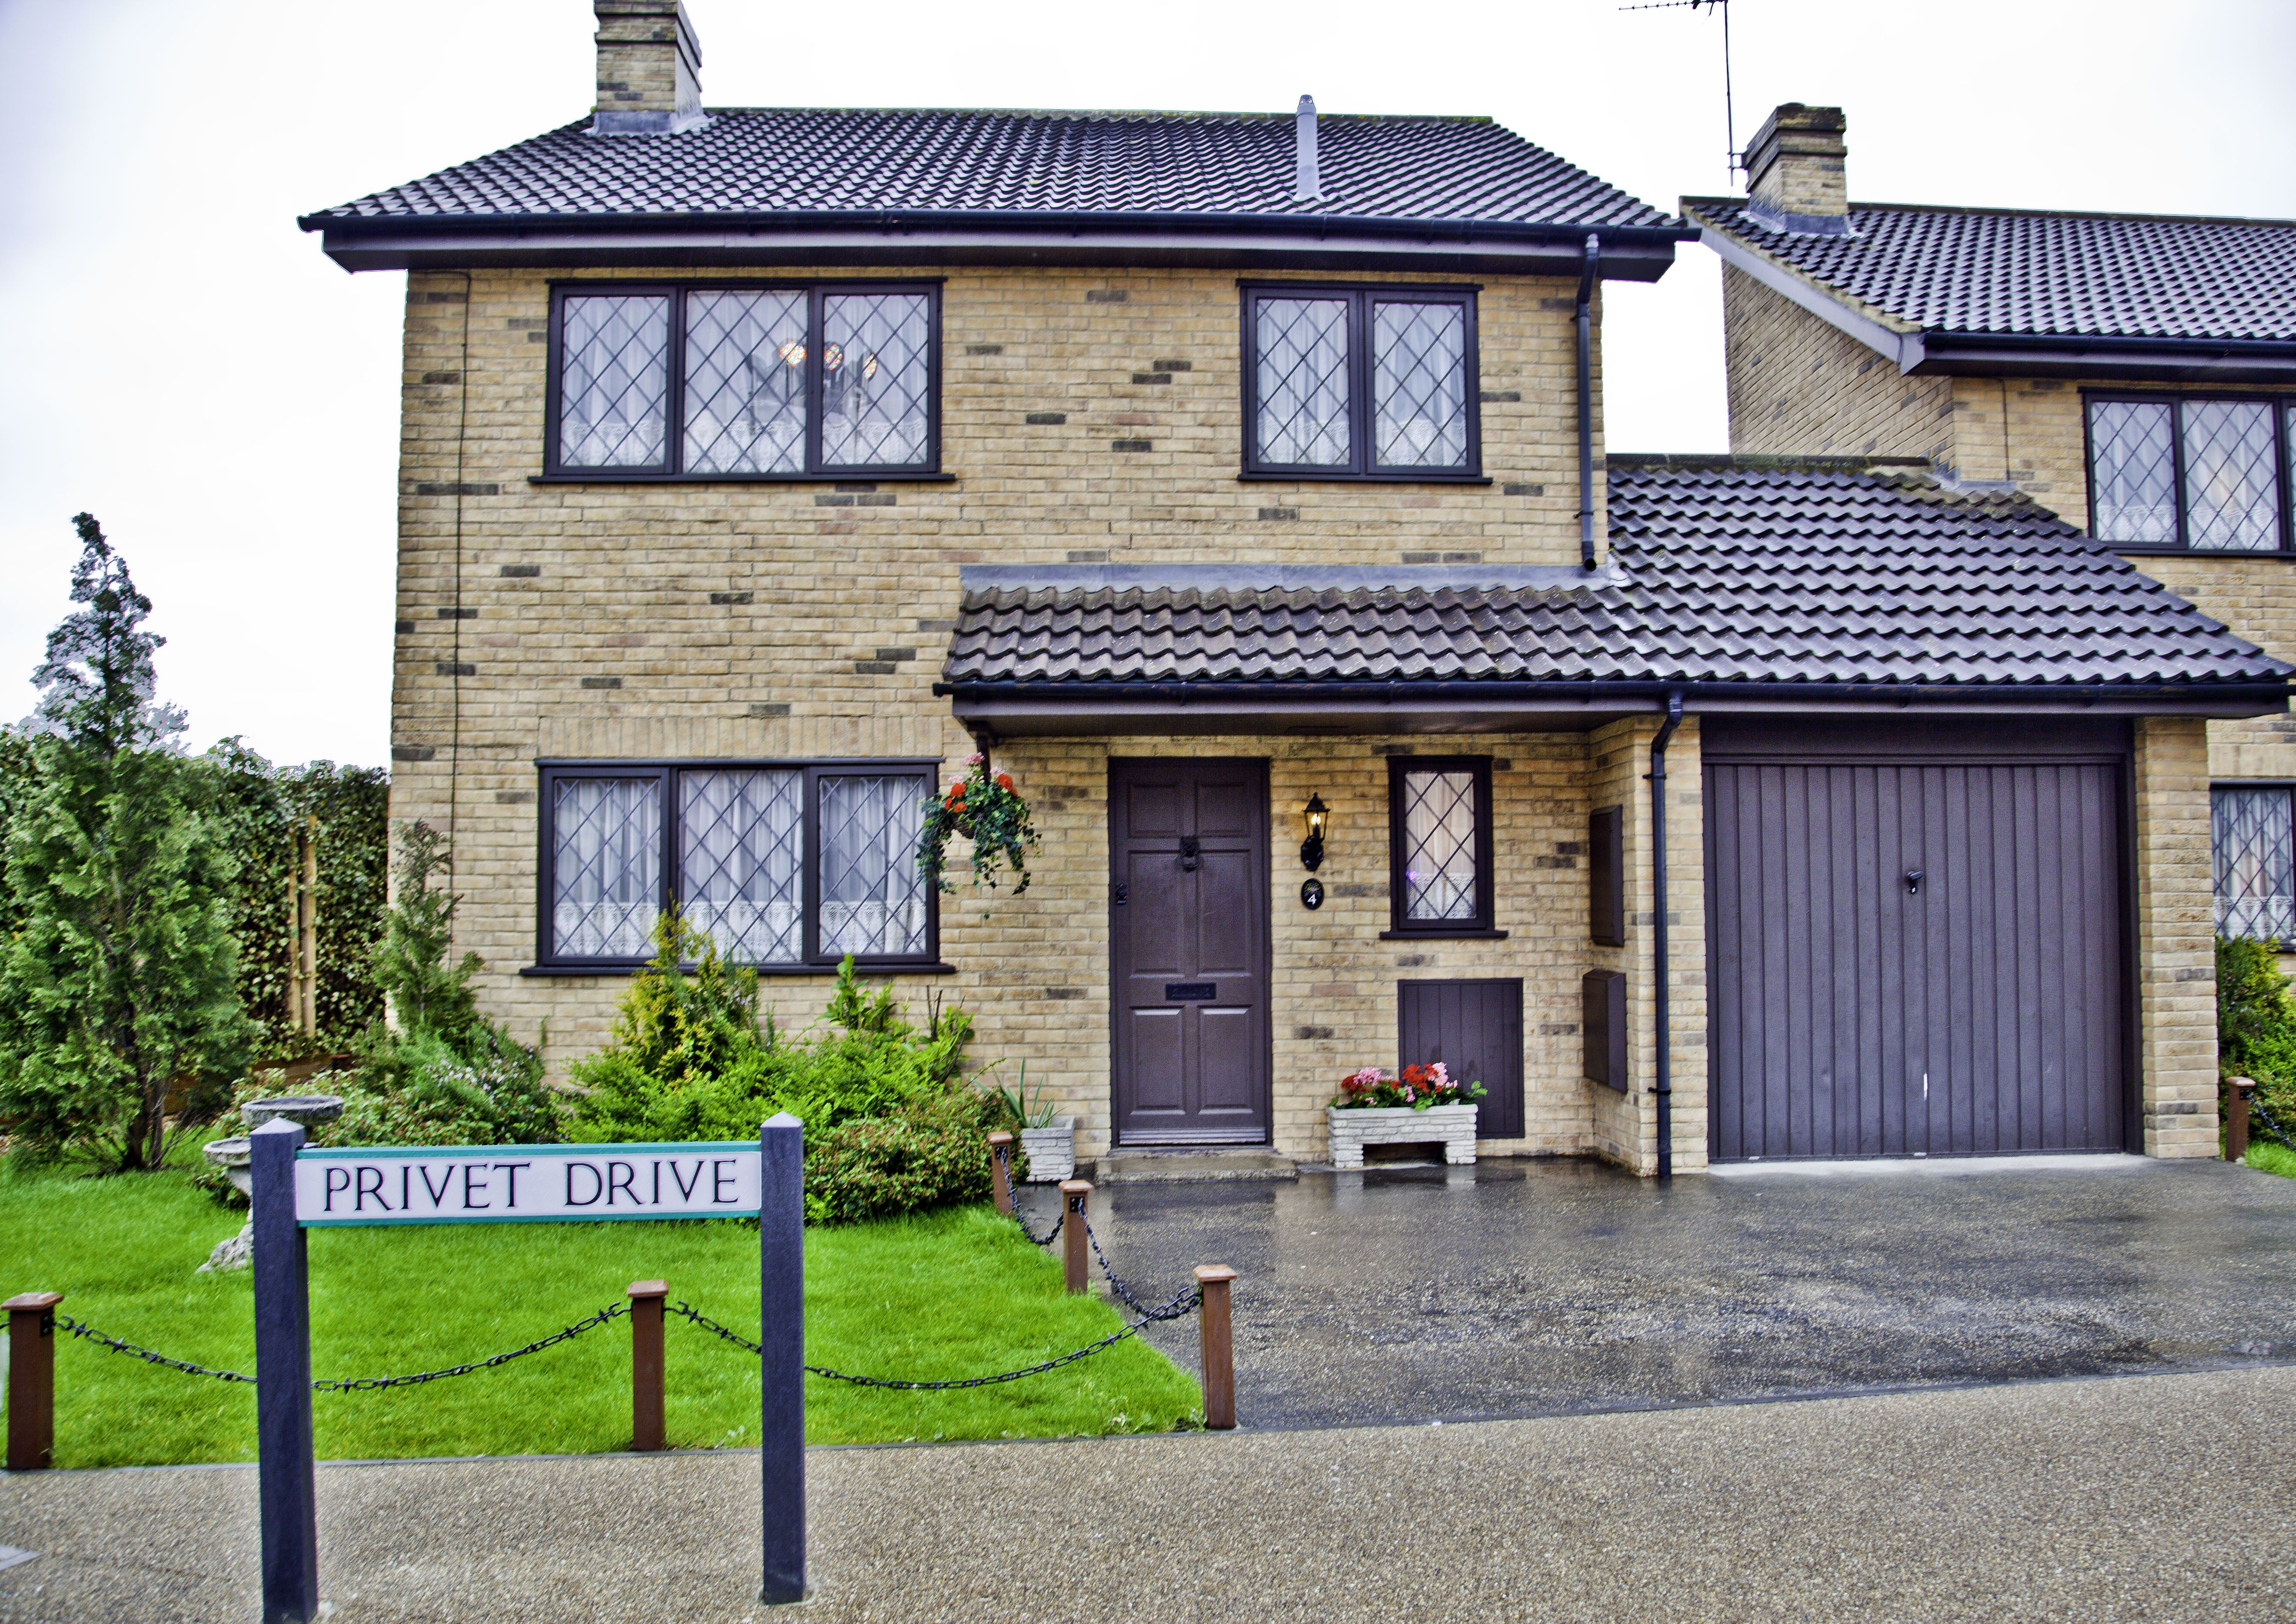 No 4 Privet Drive Little Whinging Surrey Aka The Residence Of Mr Mrs Dursley Dudley Dursley And Harry Potter C Ann Broom Surrey Harry Potter